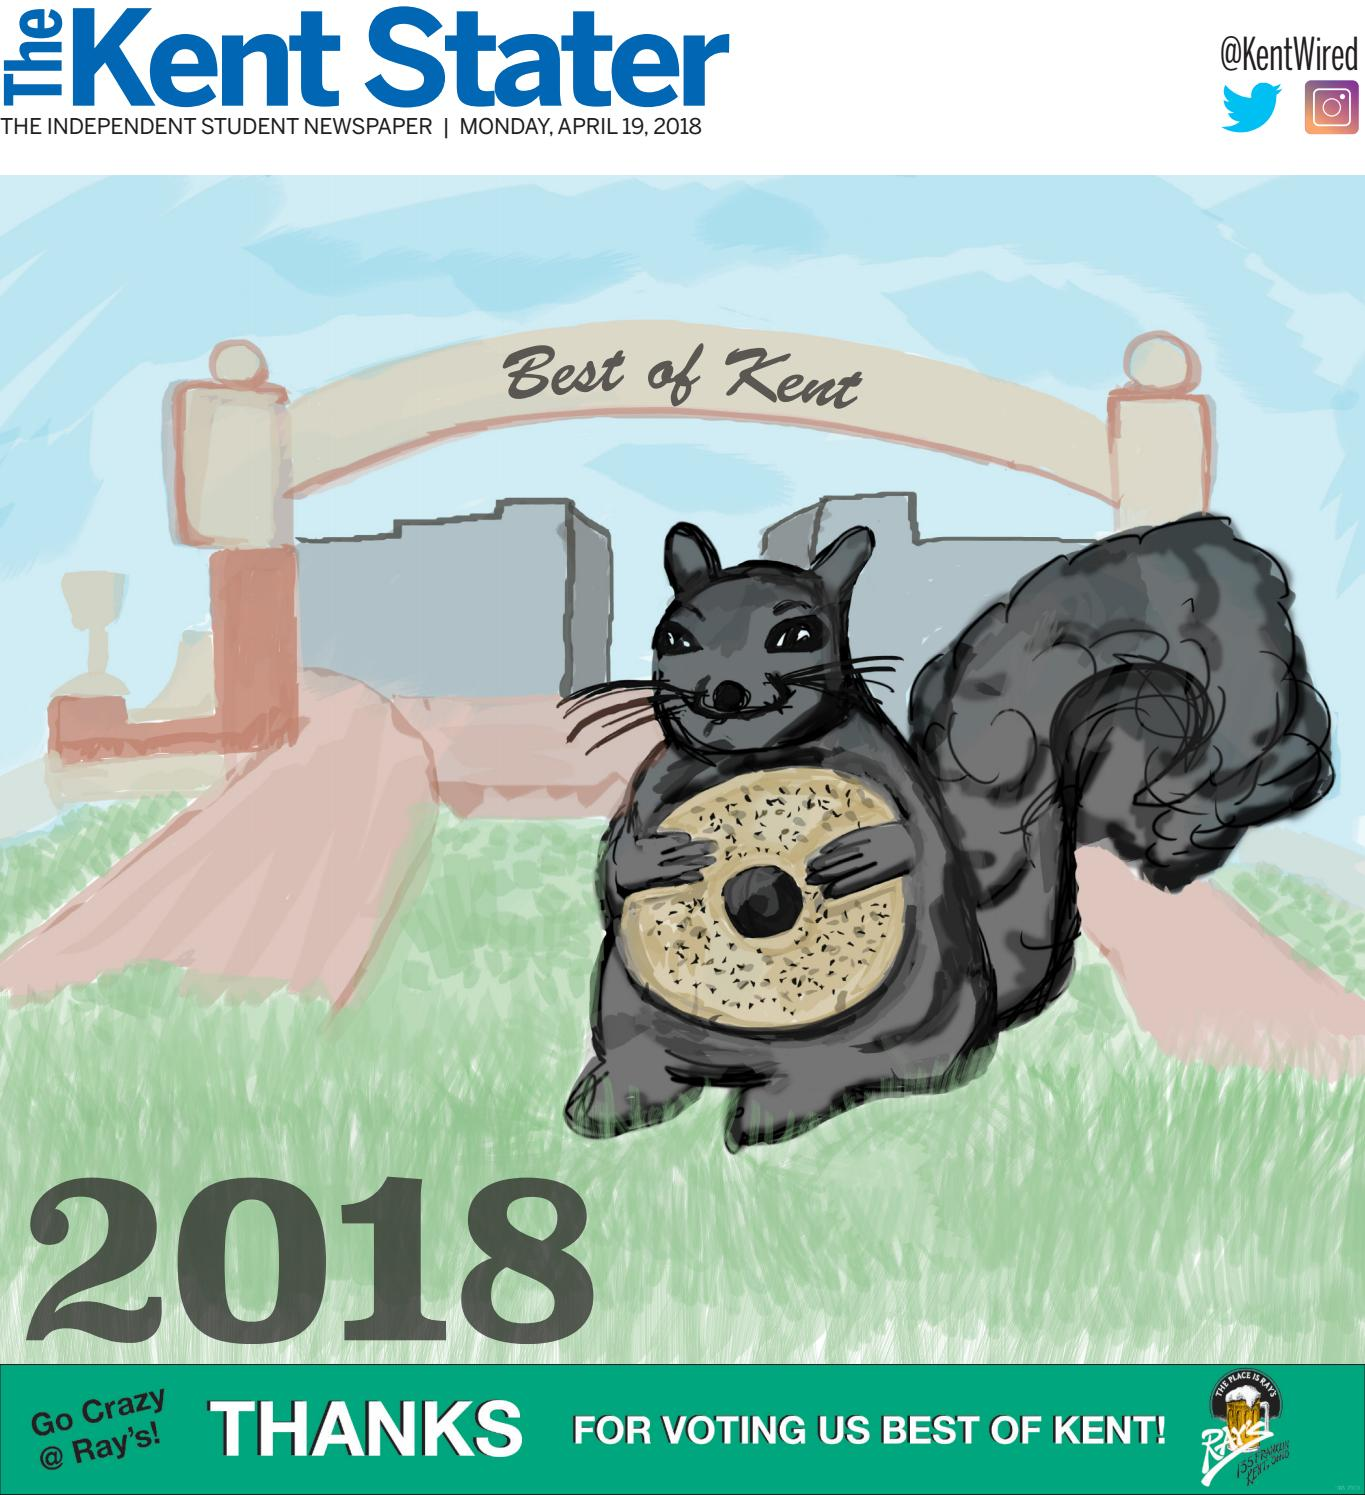 The Kent Stater April 19 2018 By The Kent Stater Issuu If heaven existed, it would be located here. the kent stater april 19 2018 by the